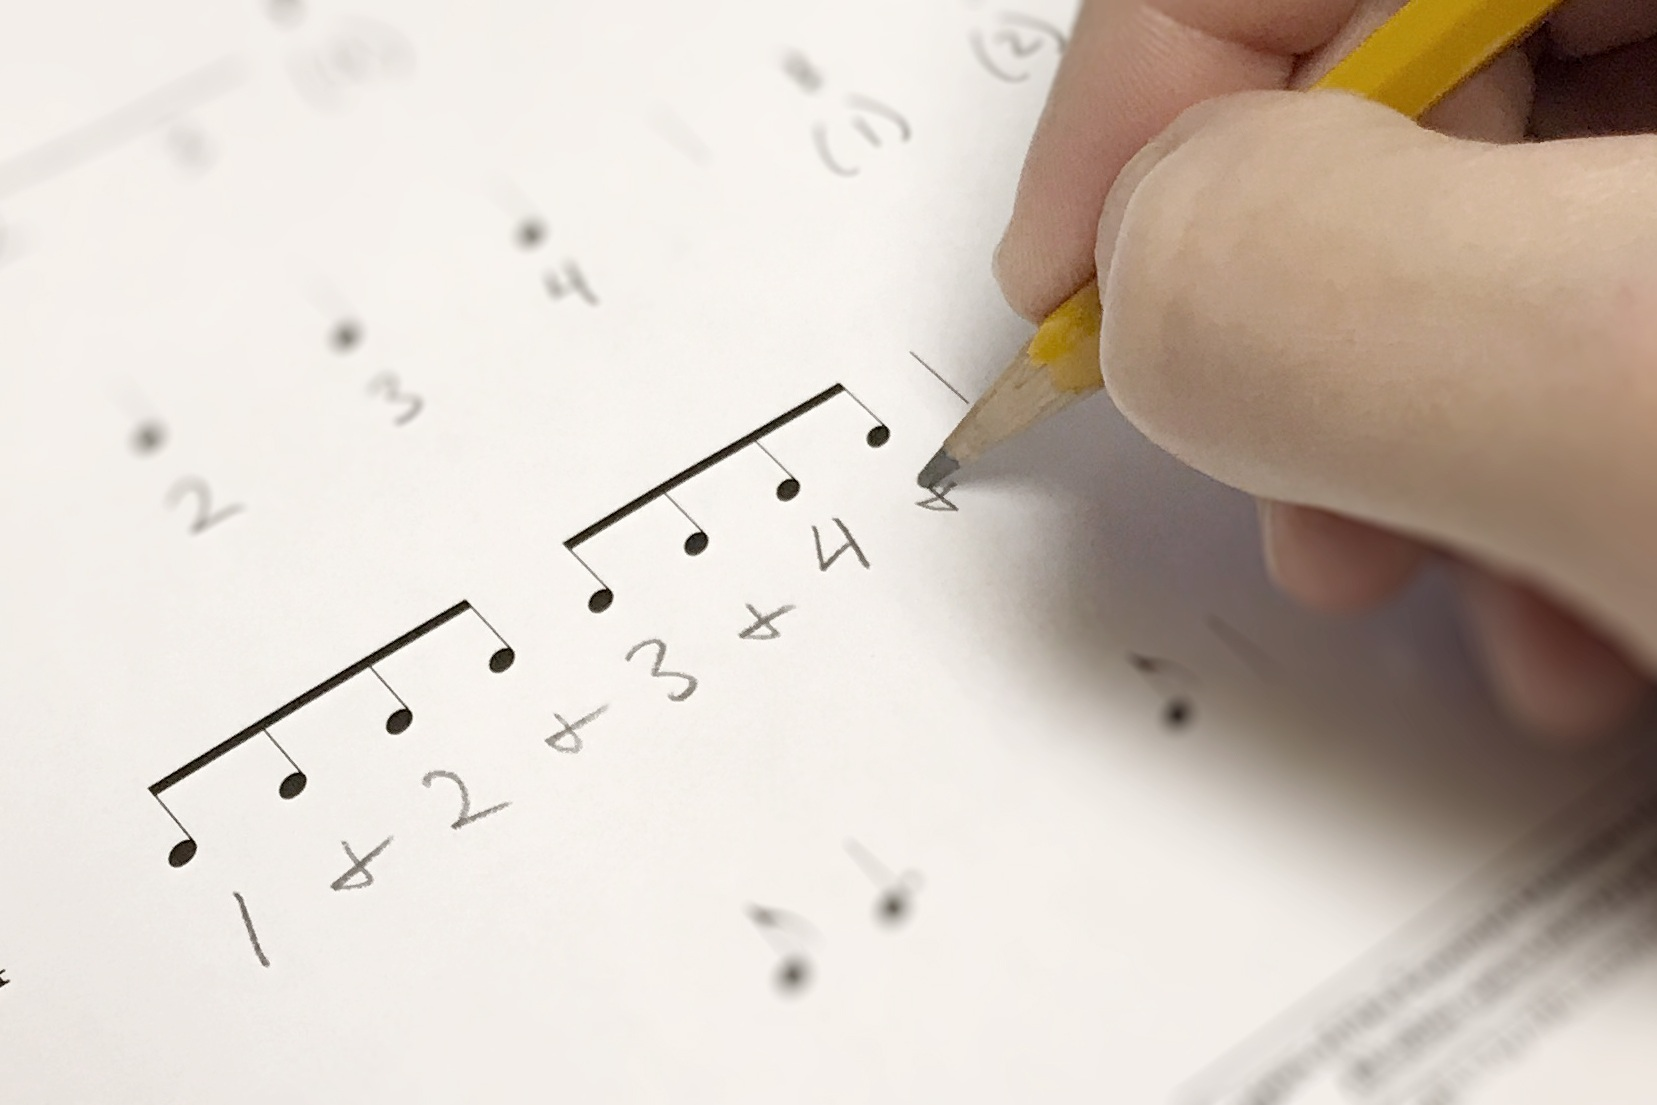 Rhythm Writing System - Writing the counts under the rhythms is a more concrete and visual way to help students understand how rhythms work together.